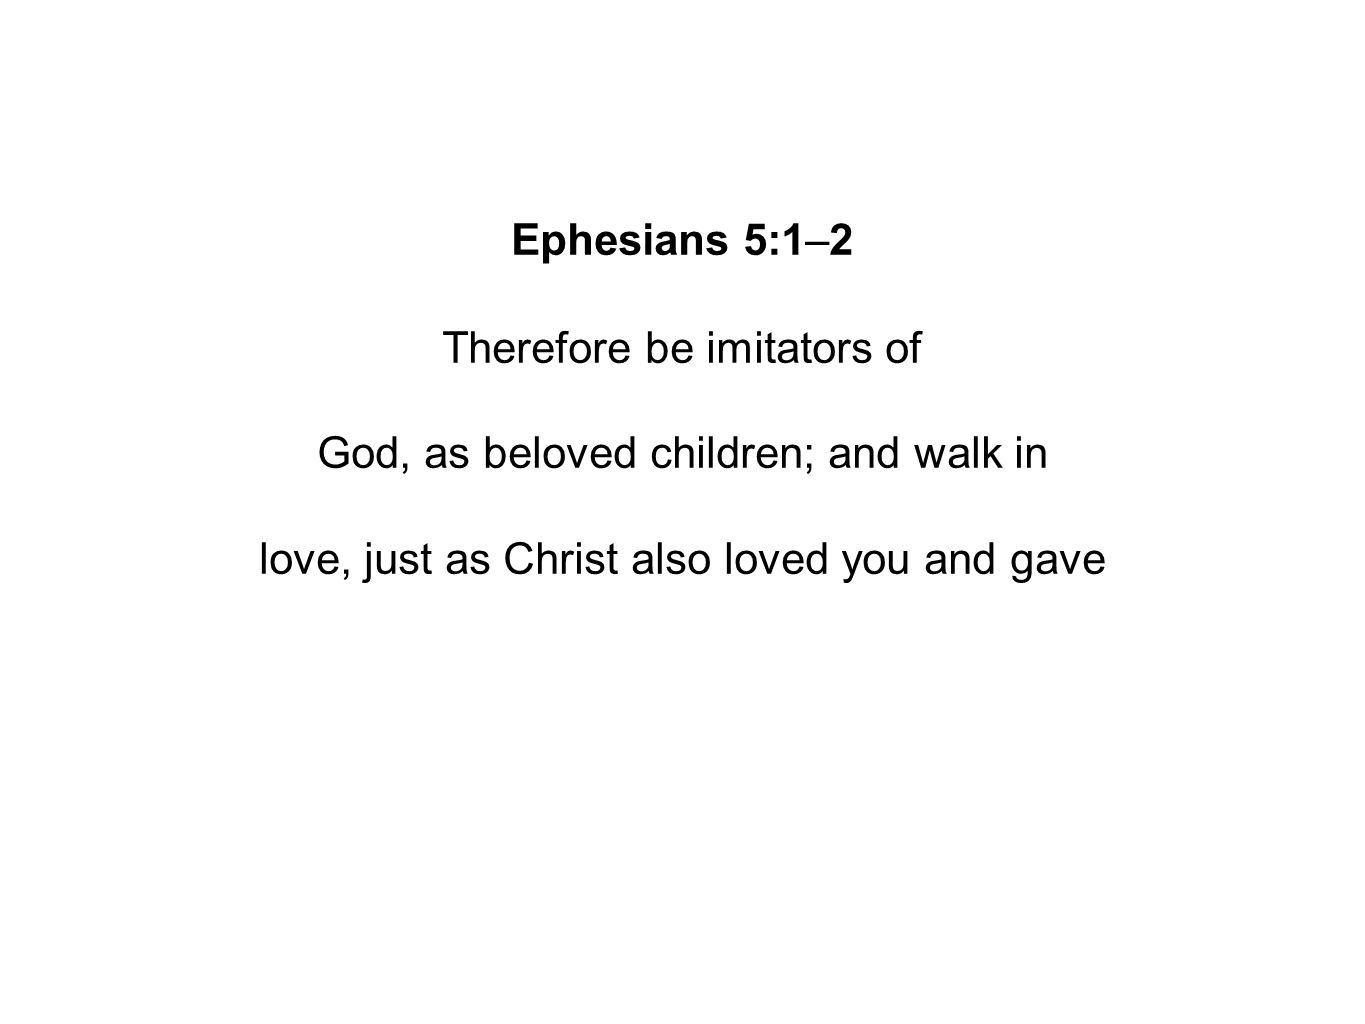 Ephesians 5:1–2 Therefore be imitators of God, as beloved children; and walk in love, just as Christ also loved you and gave